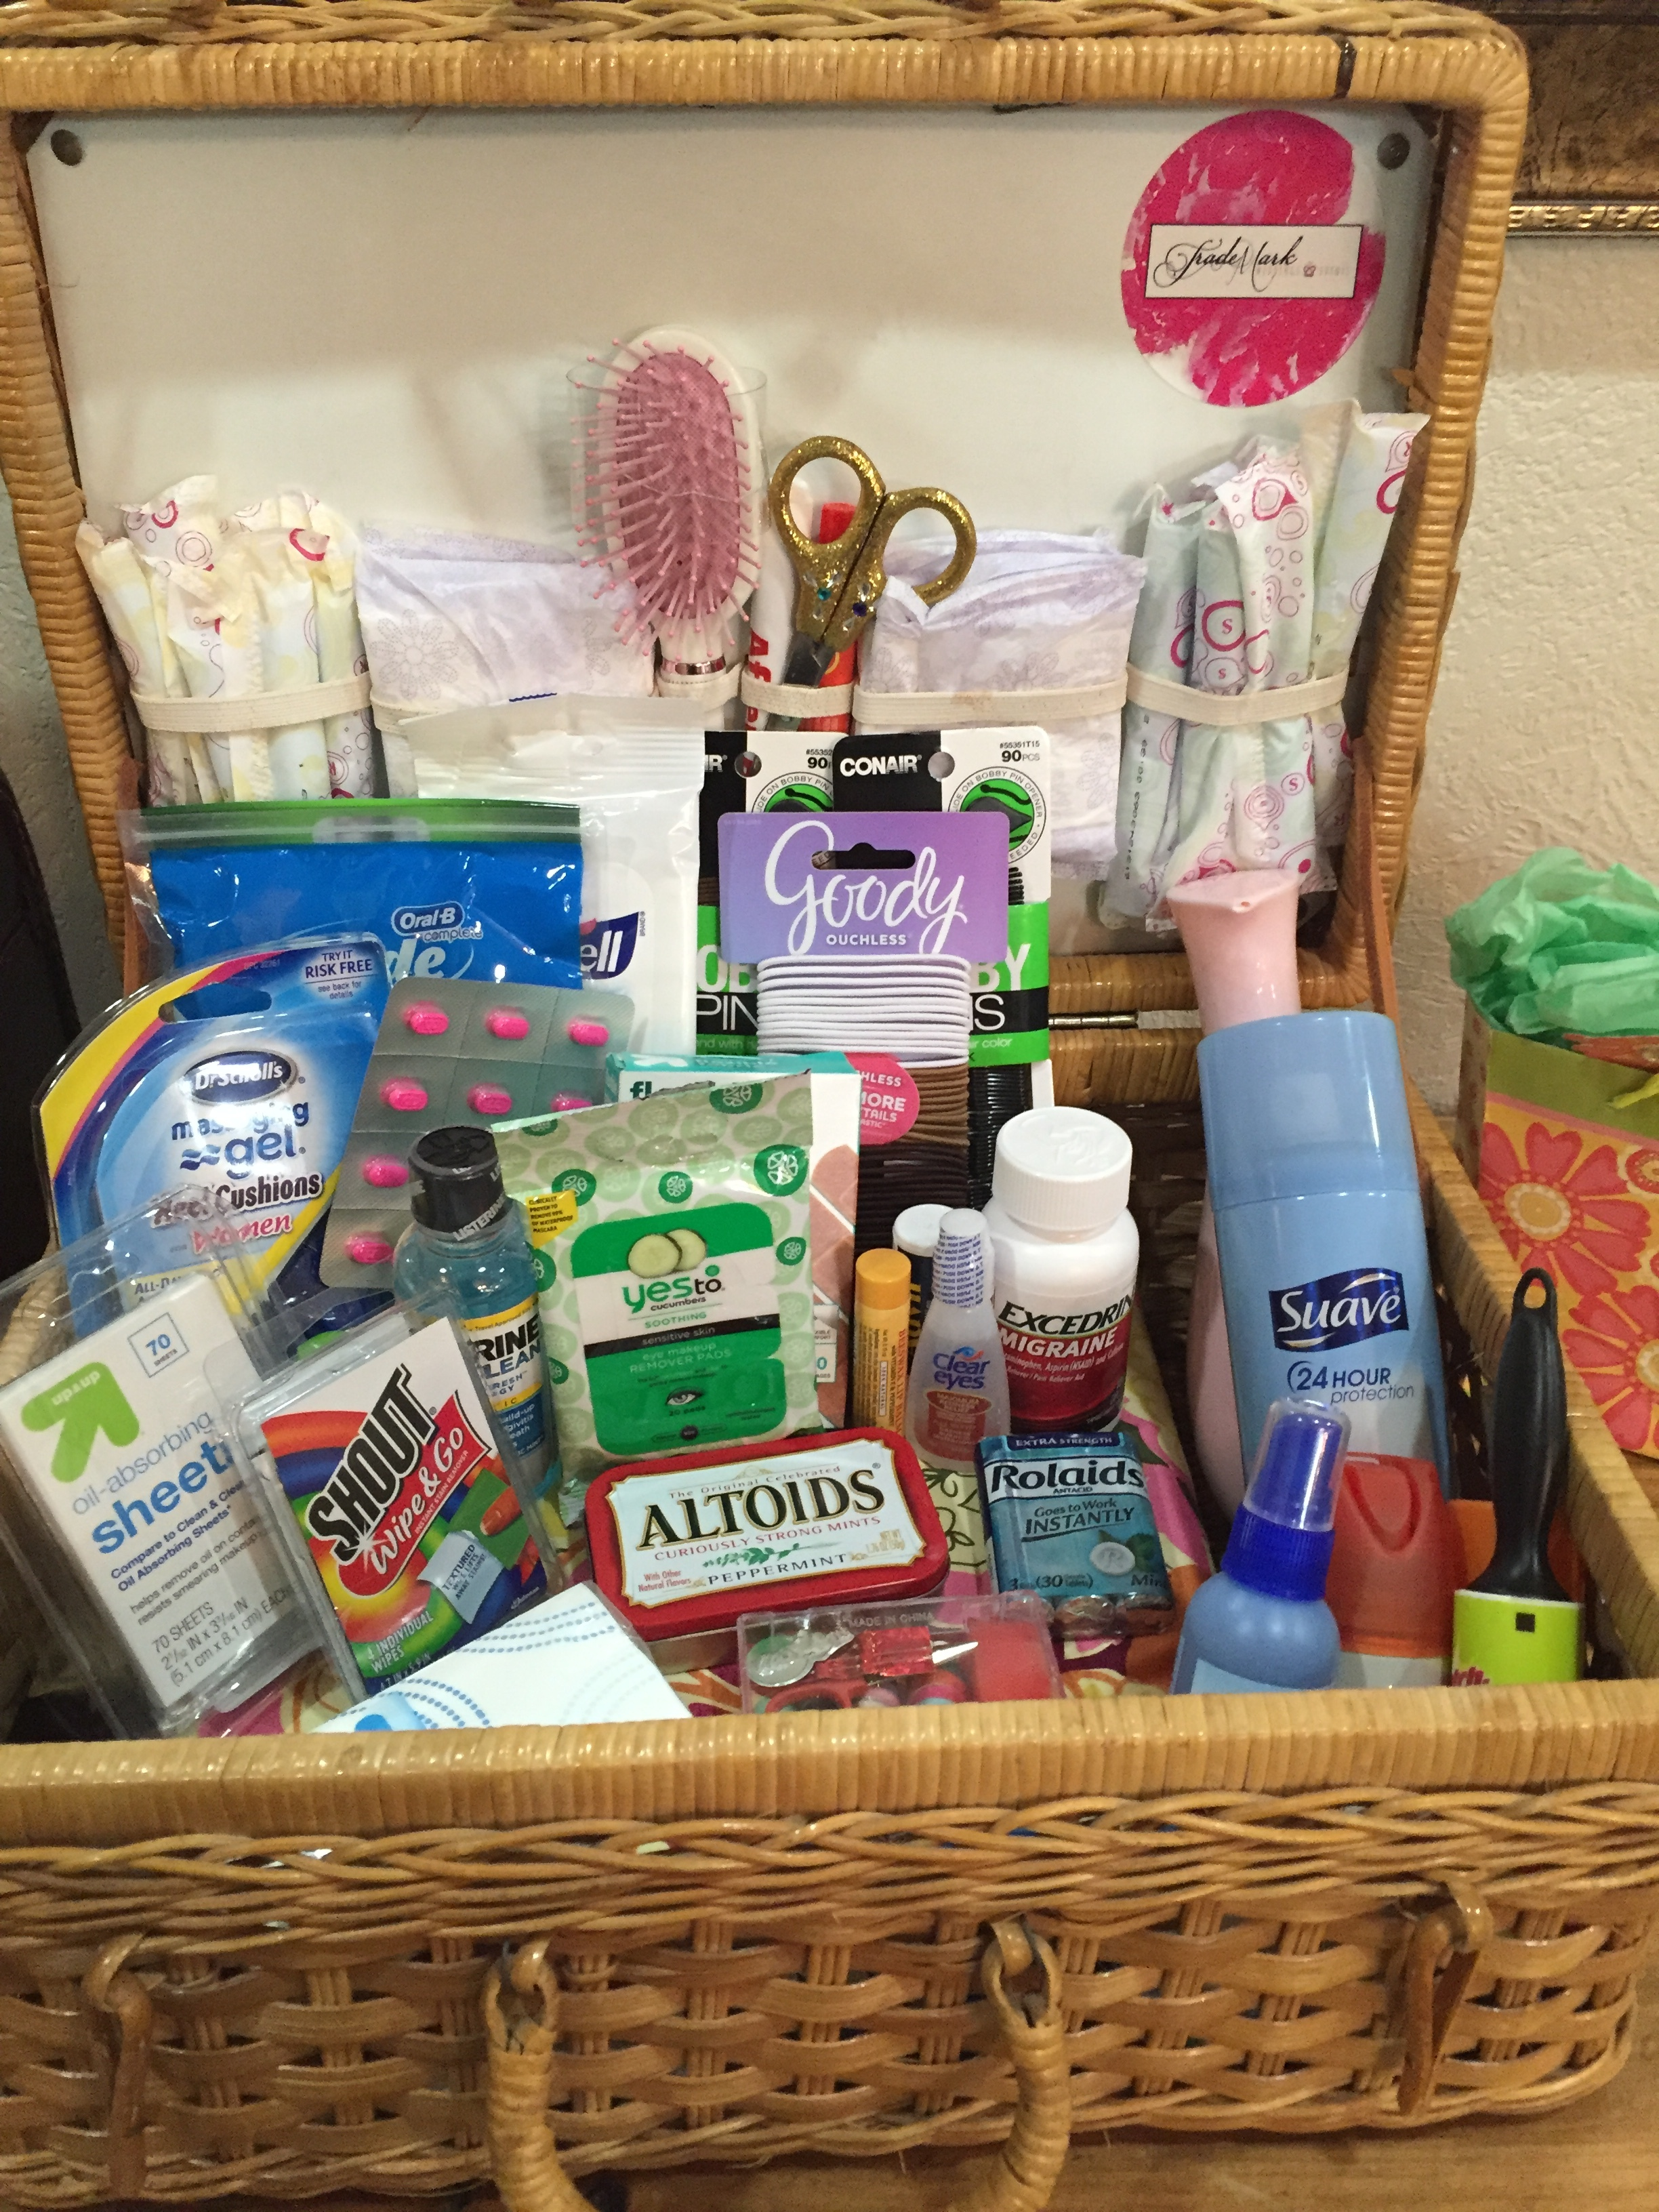 The bridal suite's Emergency Kit